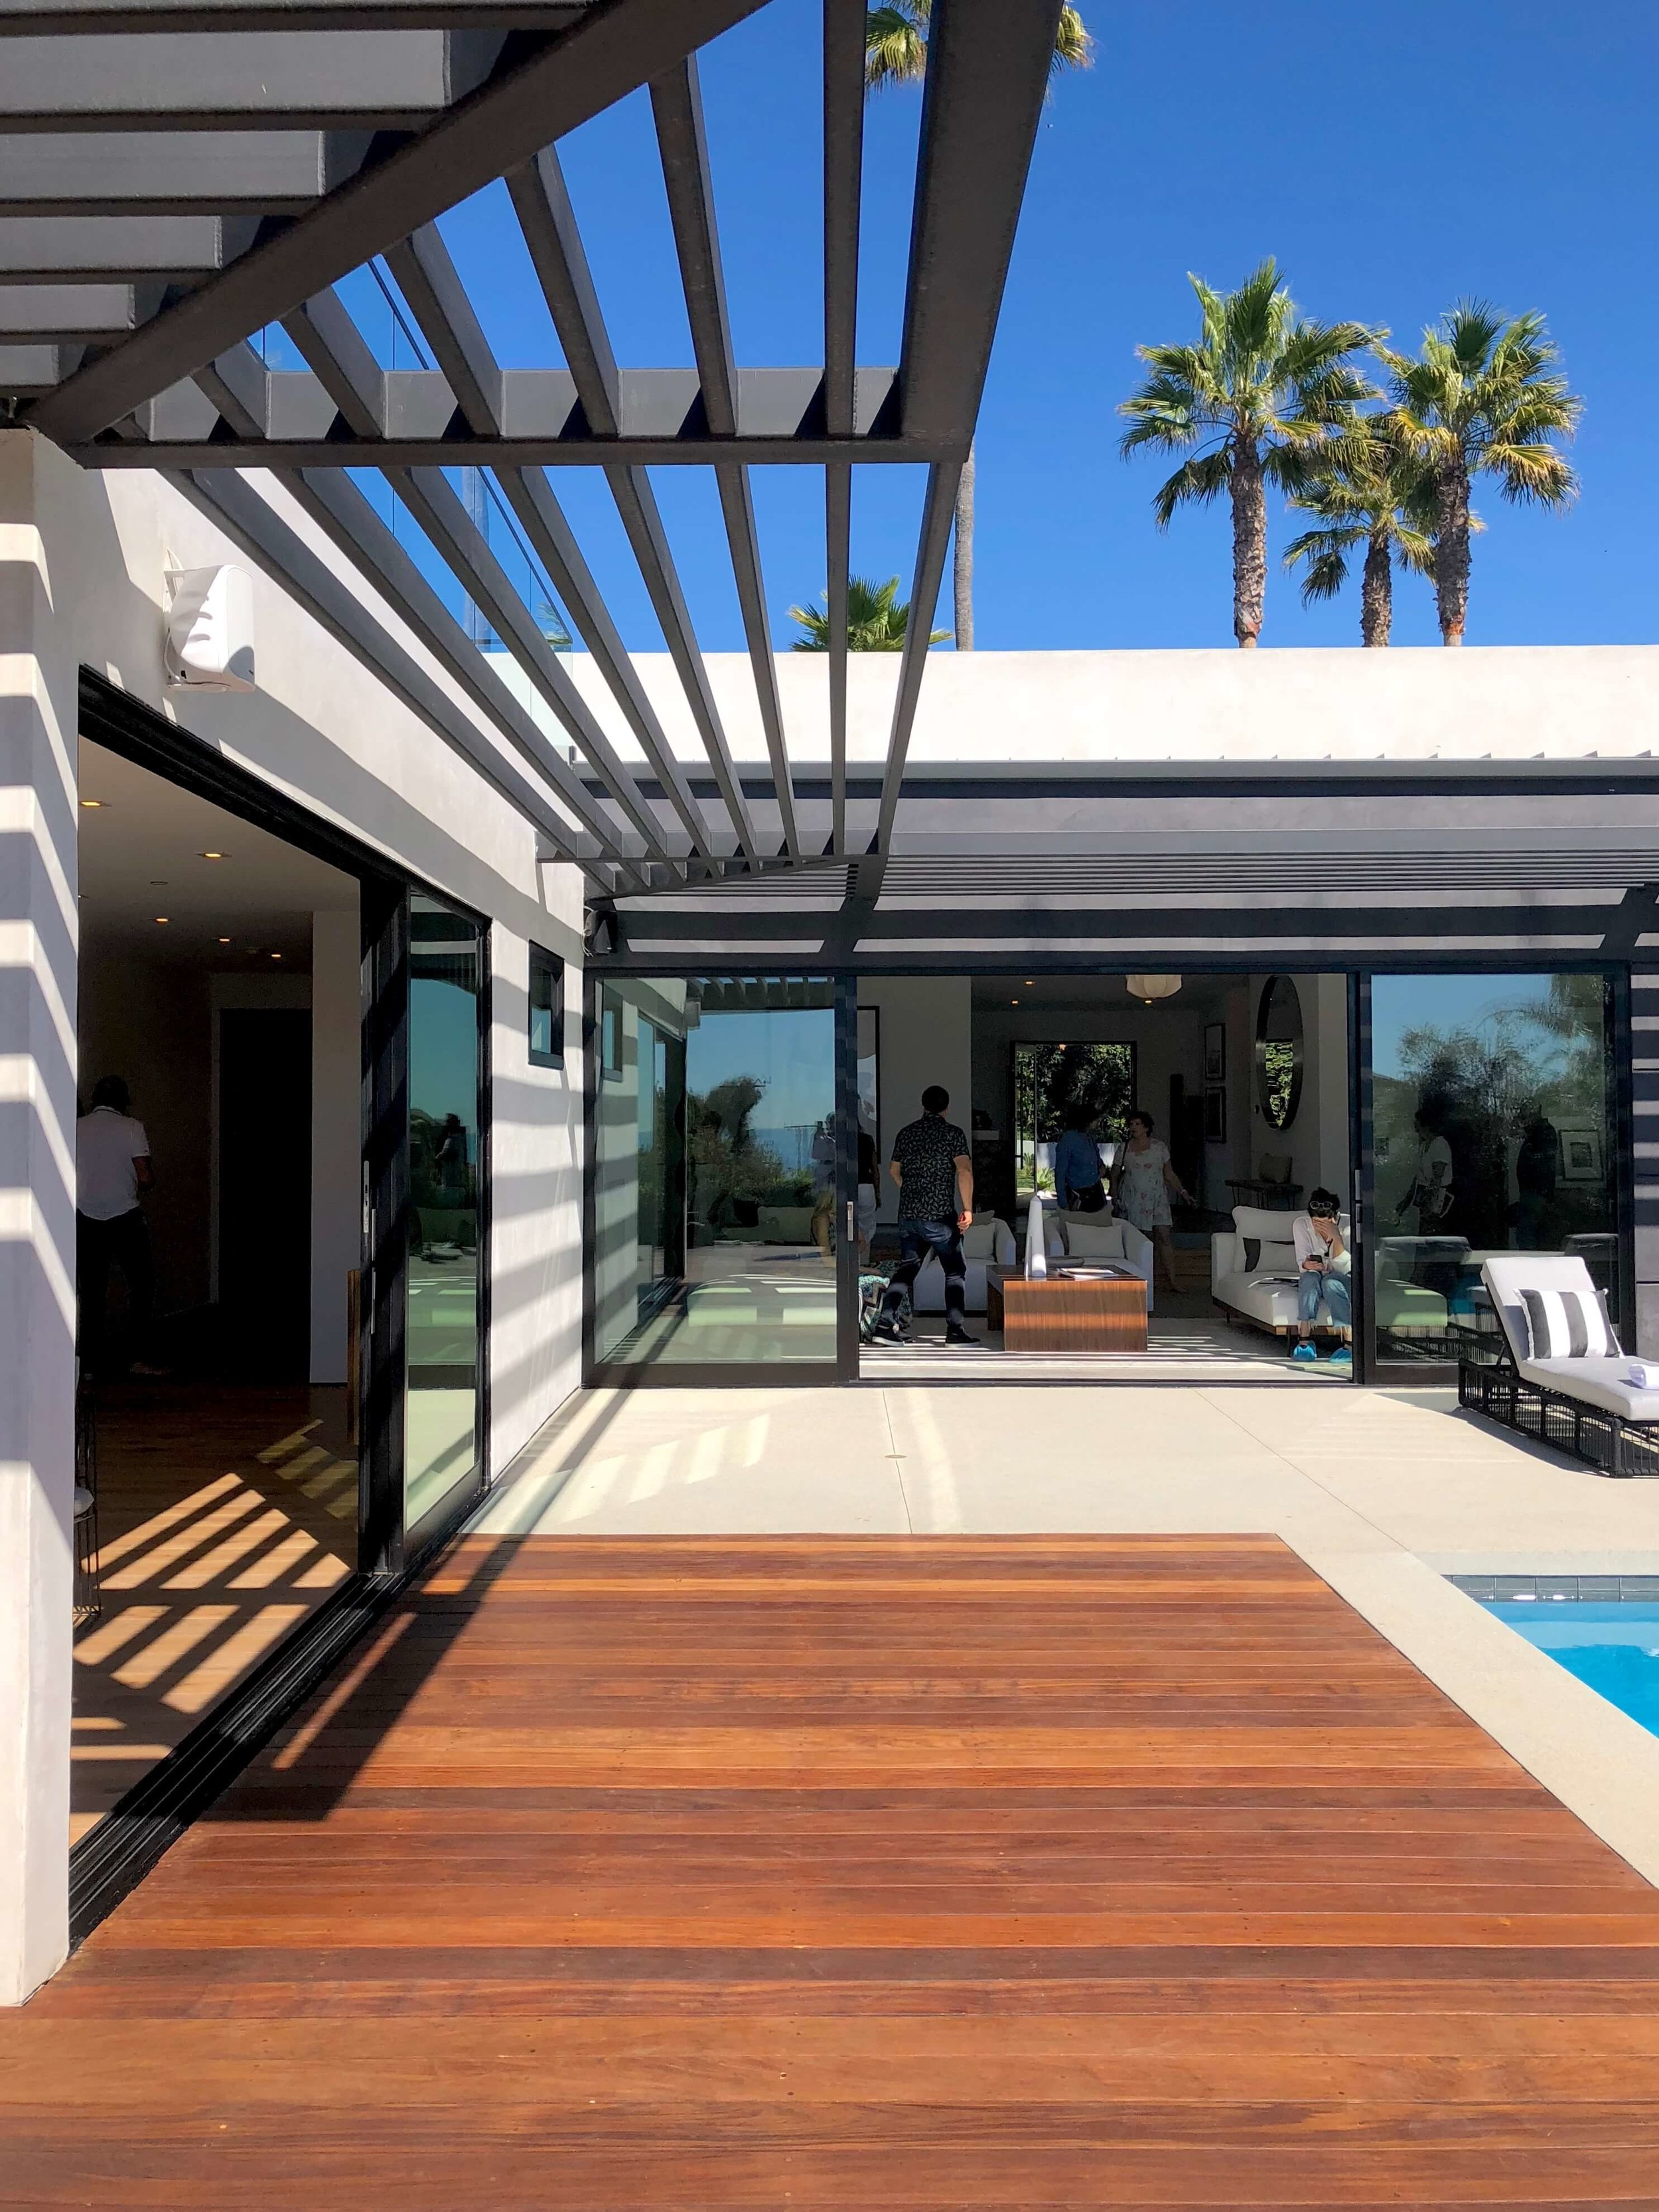 California contemporary home, Dwell on Design's Fall Home Tour, Designer: Vitus Matare #pergola #slidingdoors #patio